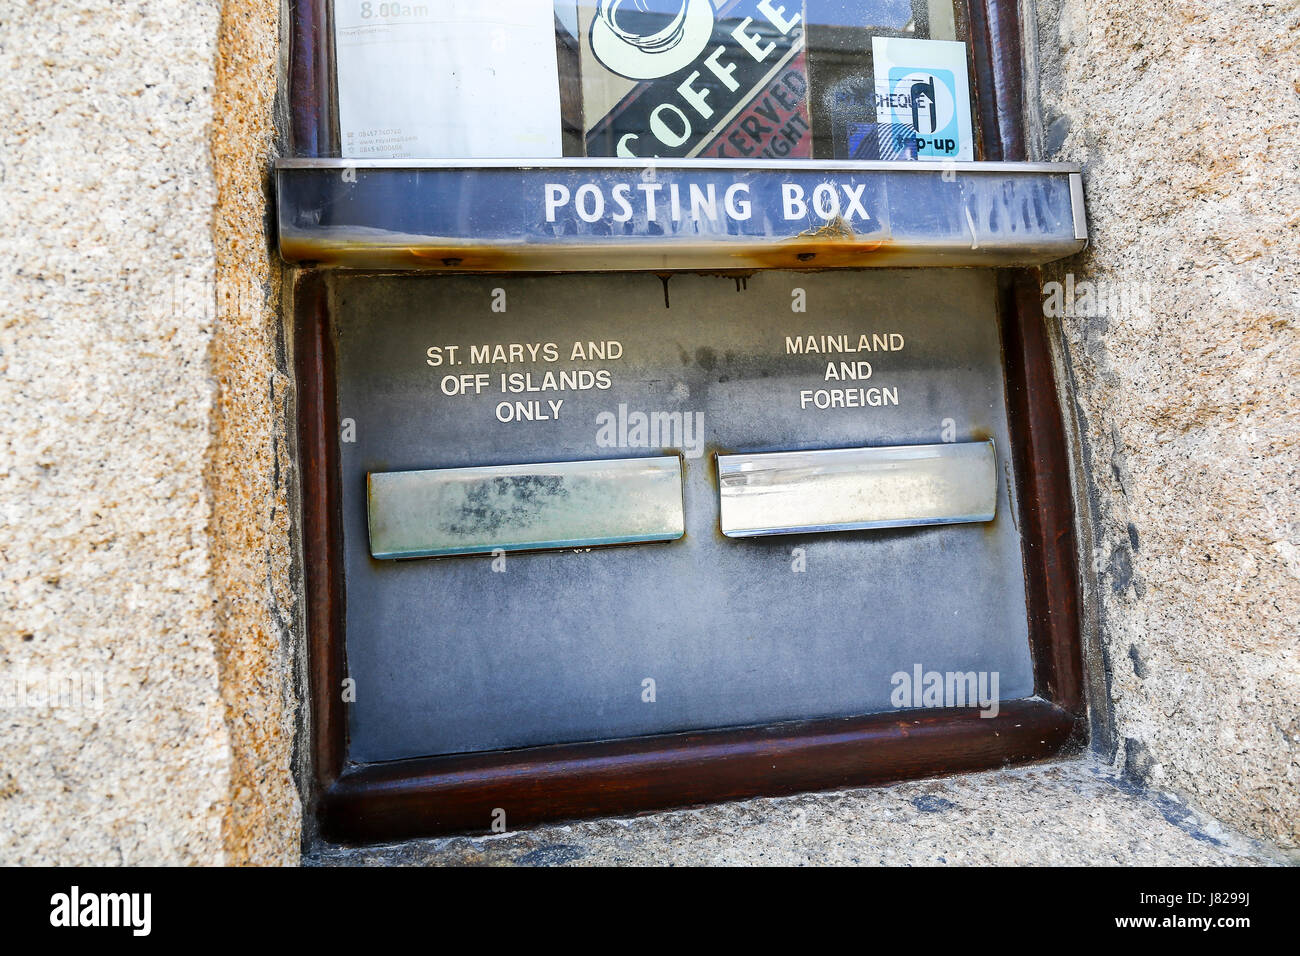 A posting or post box or letter box at Hugh Town, St. Mary's, Isles of Scilly, Cornwall, England, UK - Stock Image